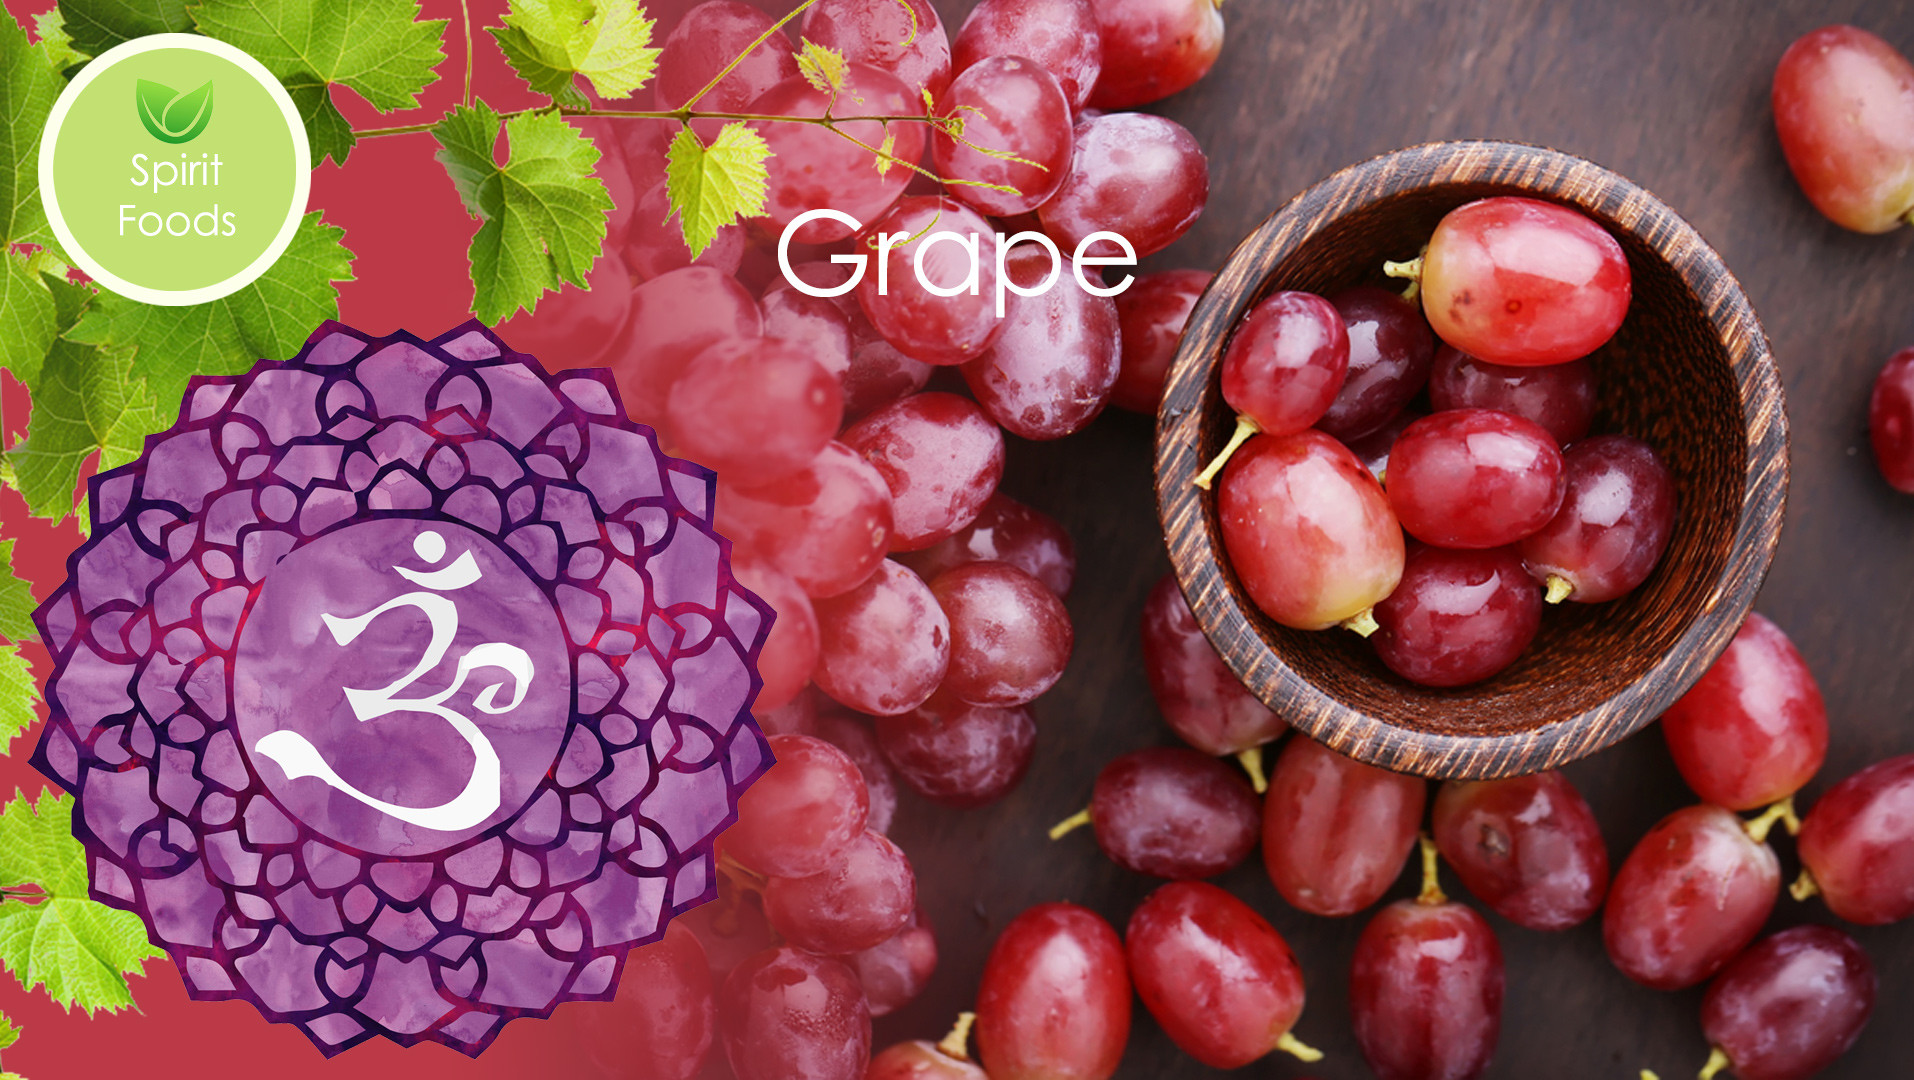 Spirit Food – Grape